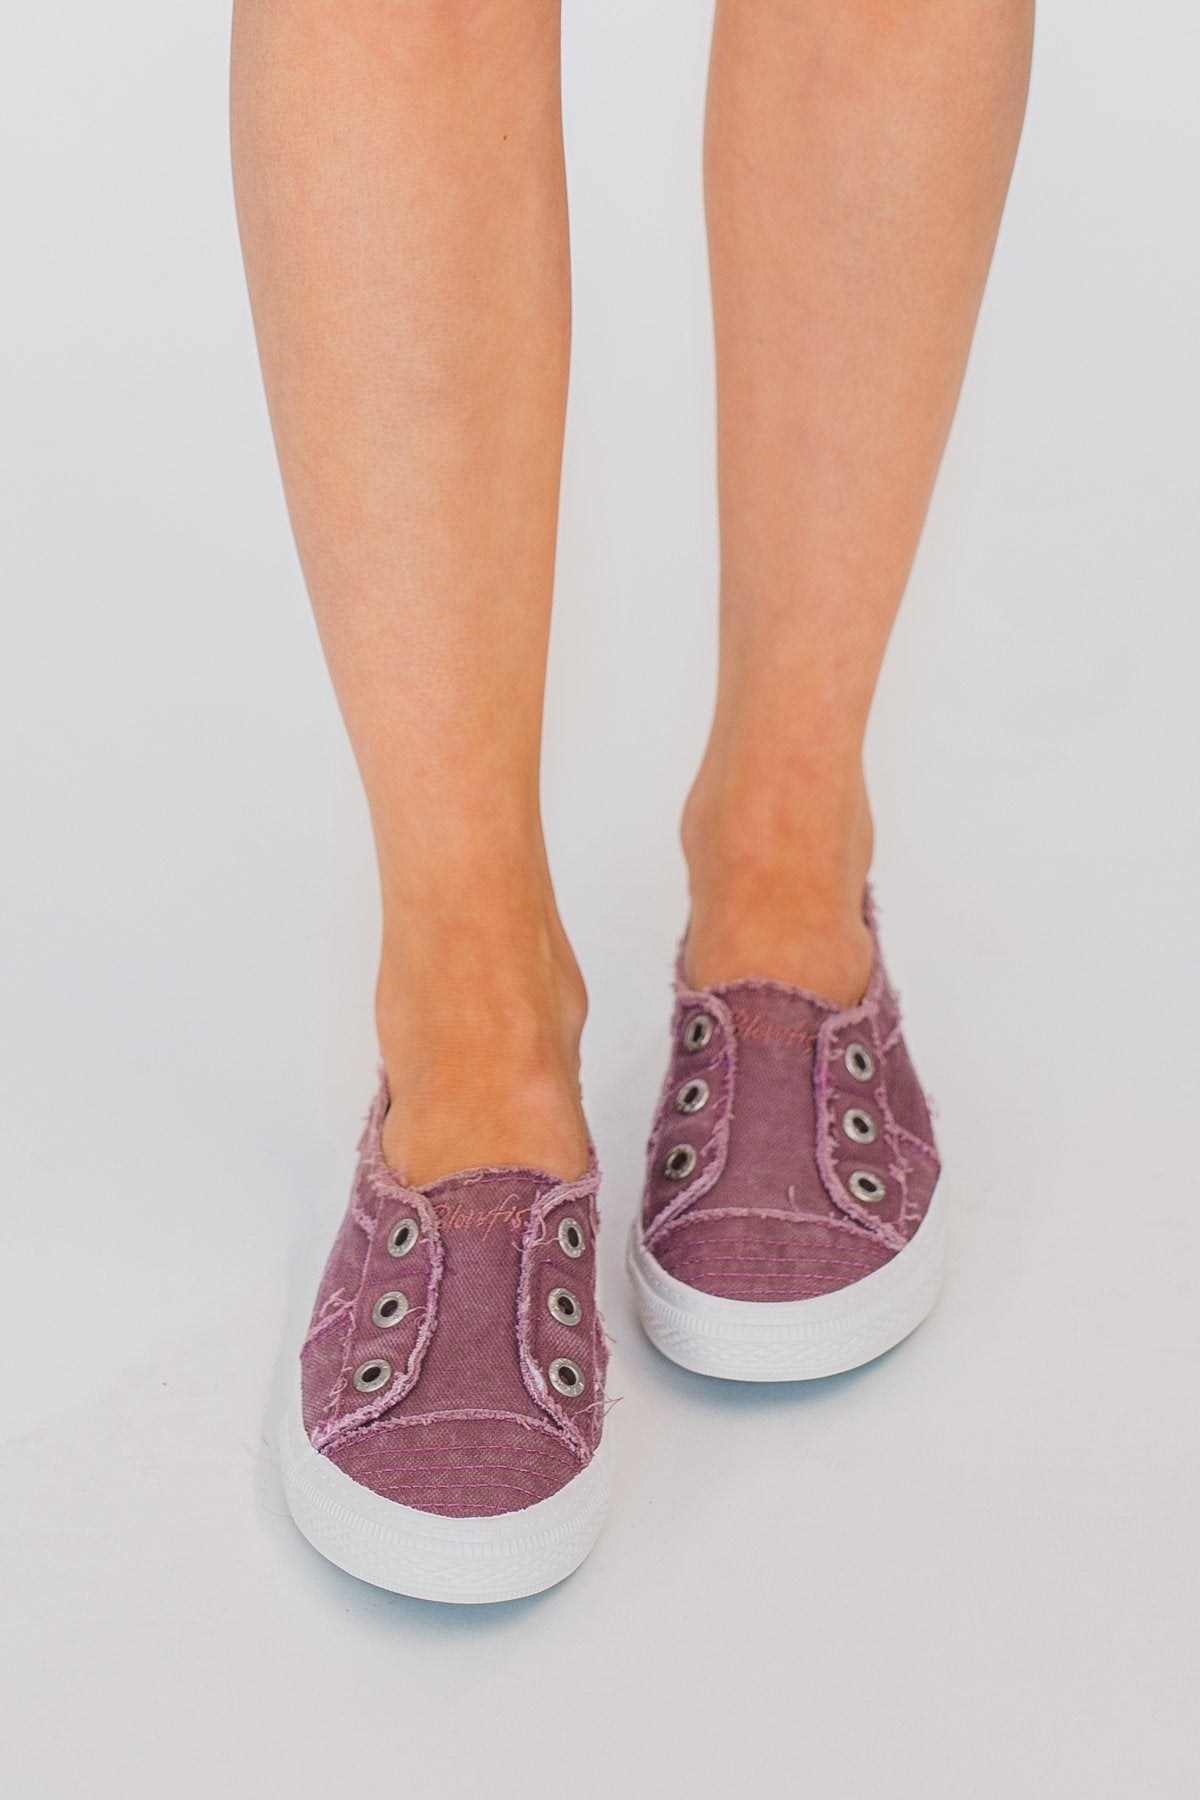 Blowfish Aussie Sneakers- Lavender Frost